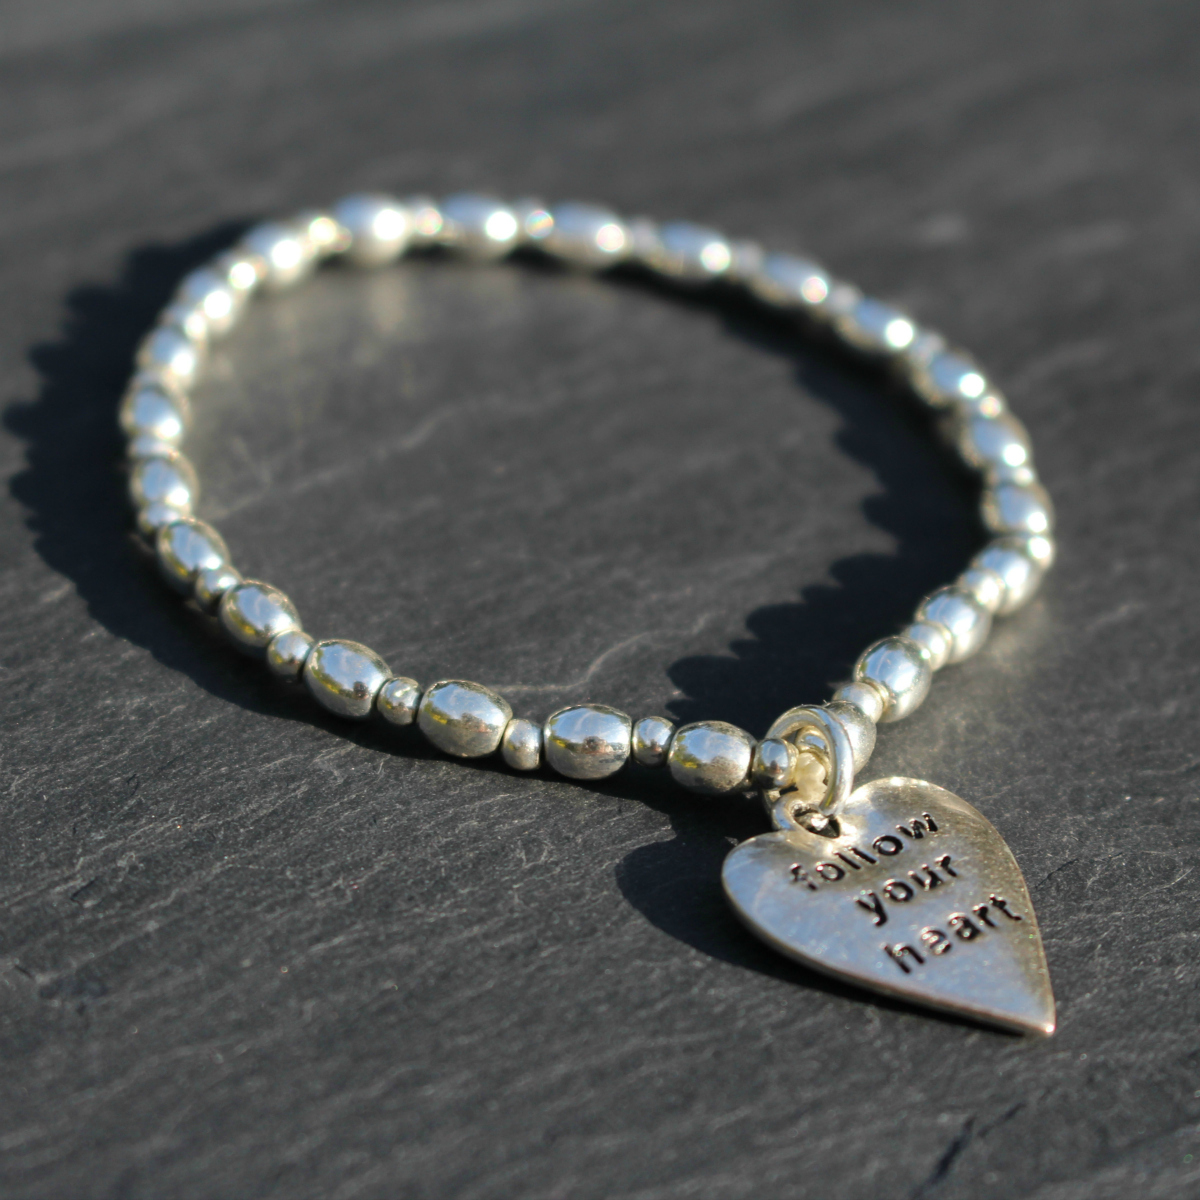 Hot Tomato Follow Your Heart Bracelet